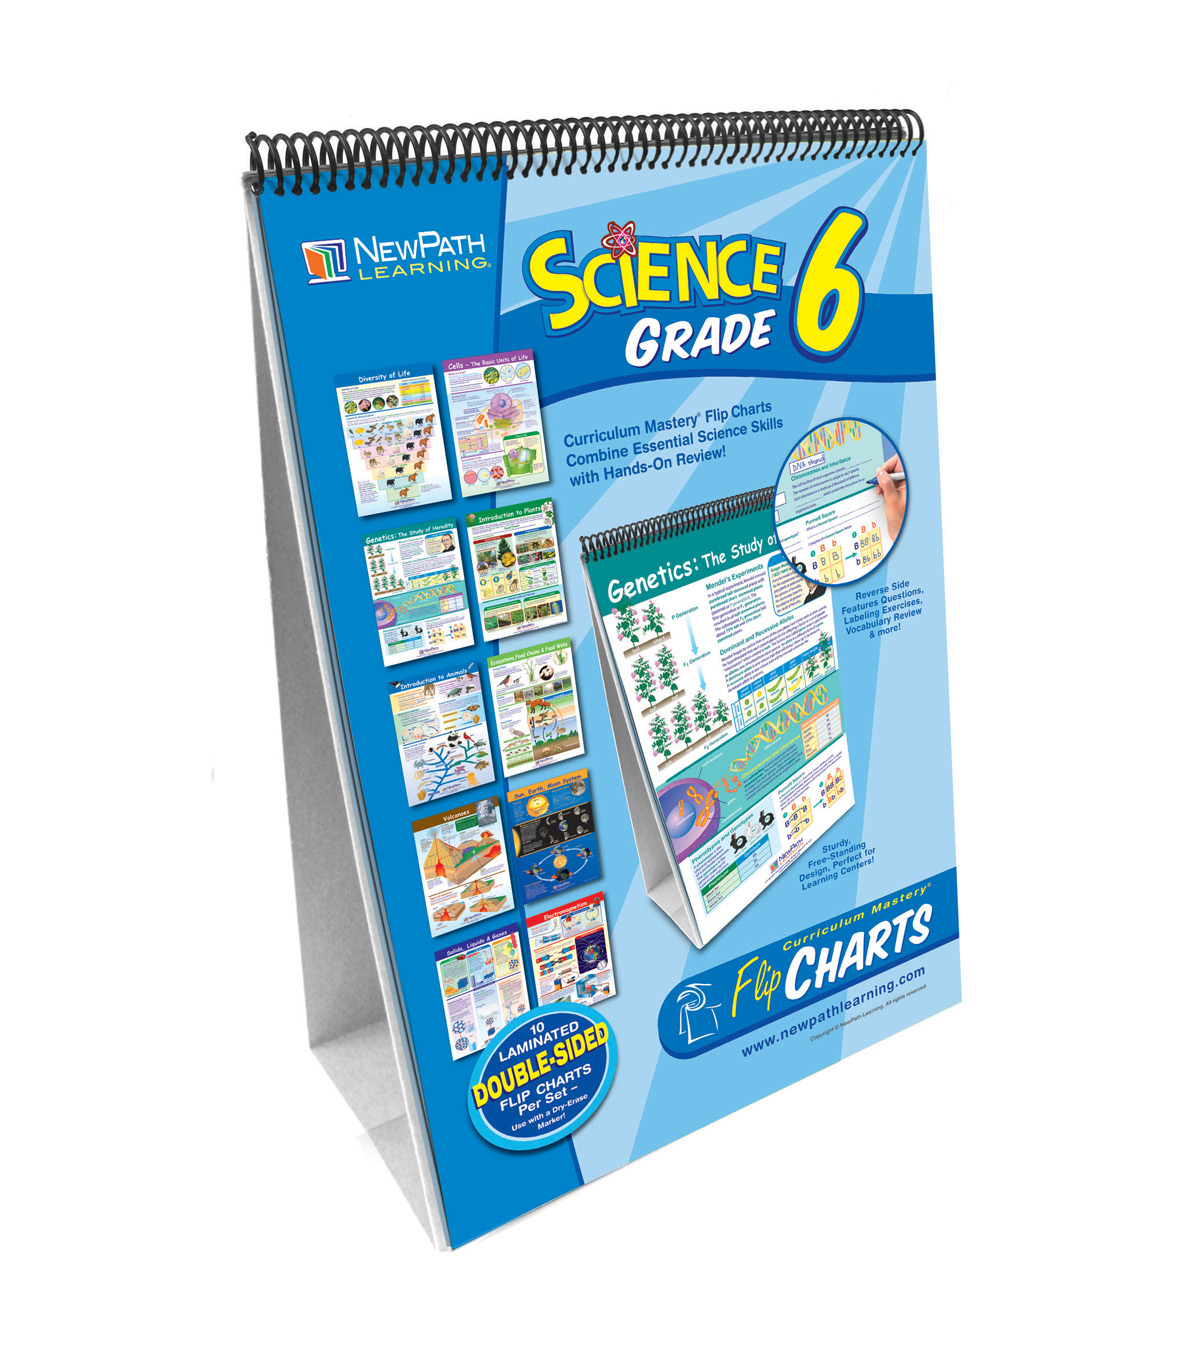 NewPath Learning Science Skills Curriculum Mastery Flip Chart Grade 6